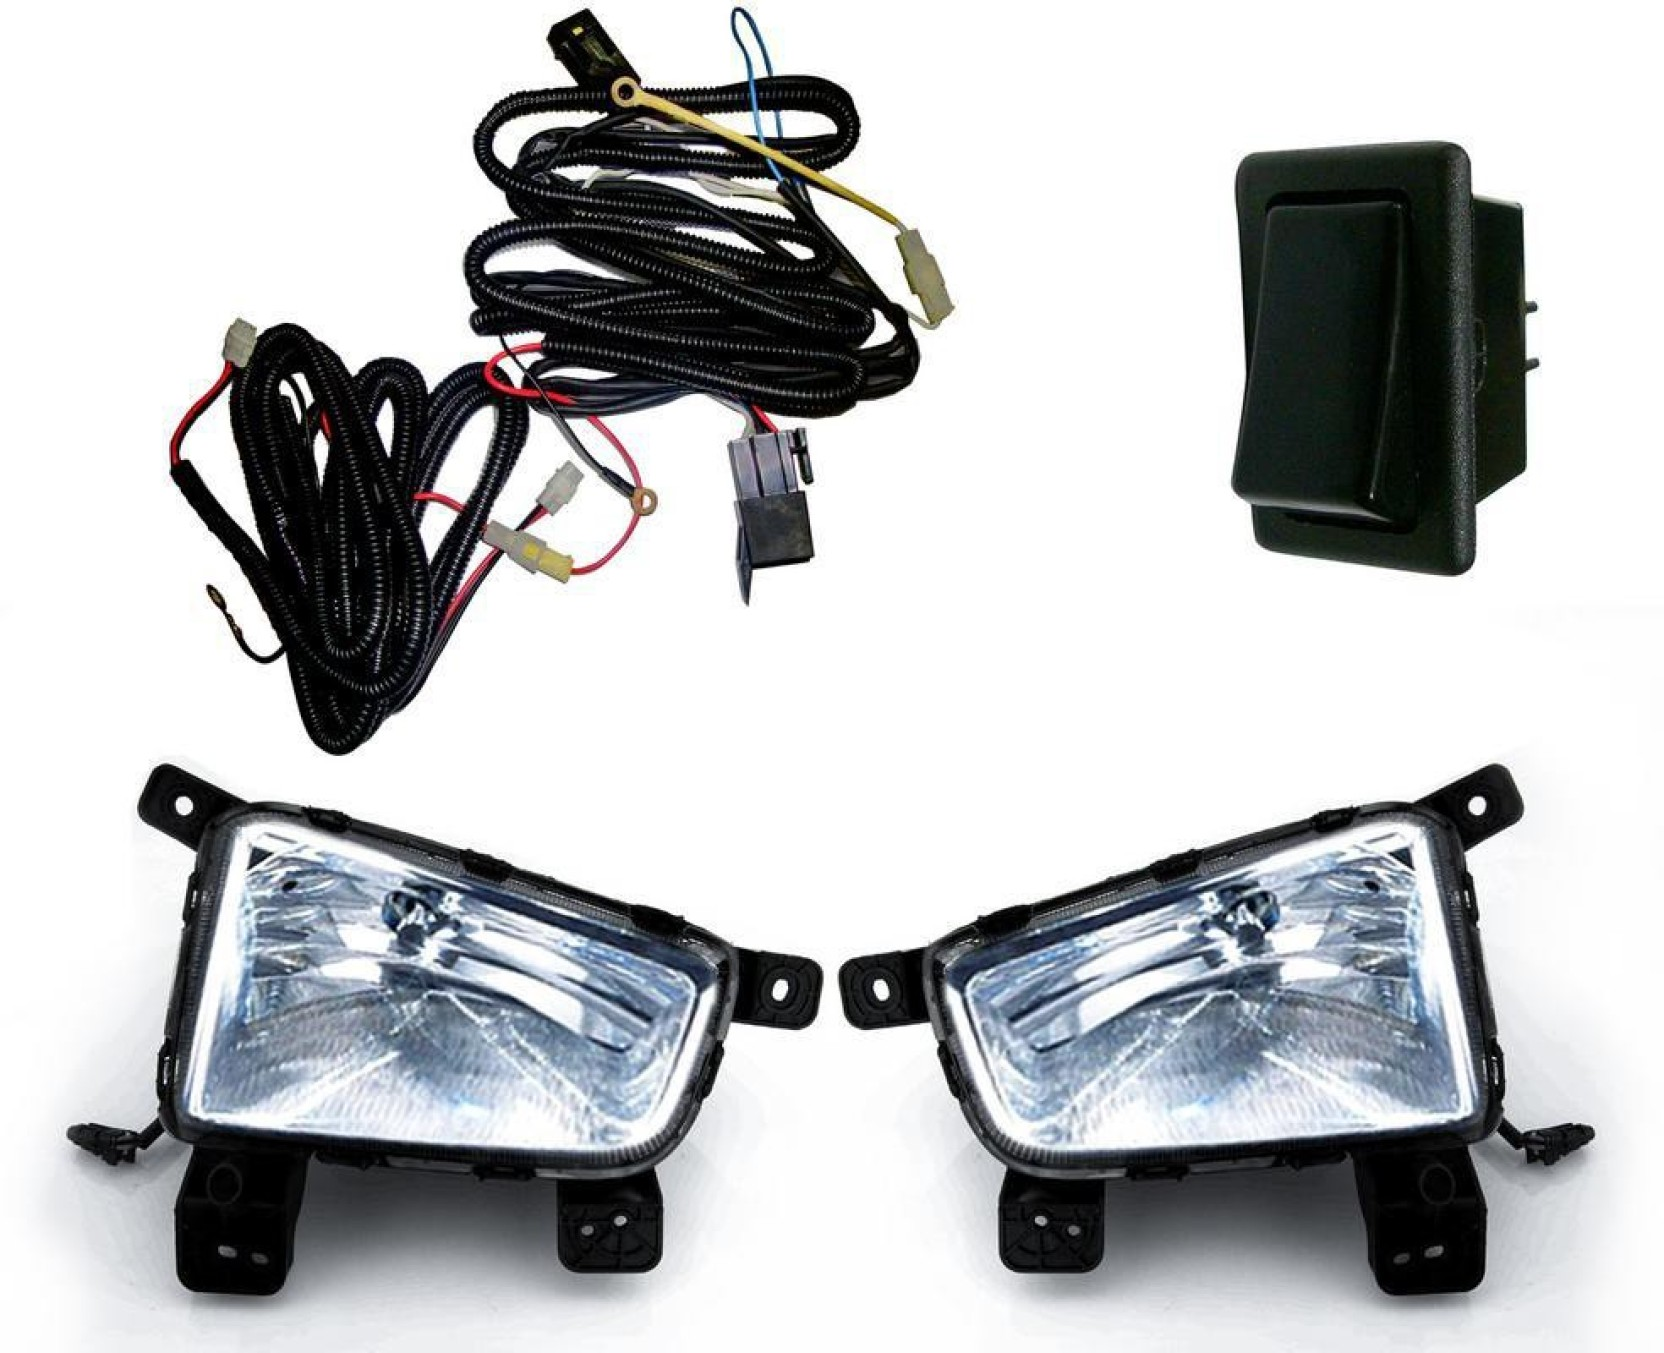 Auto Pearl Halogen Fog Lamp Unit For Hyundai Creta Price In India Oval Lights Driving Lamps W Wiring Kit Fits Most Cars Trucks Share